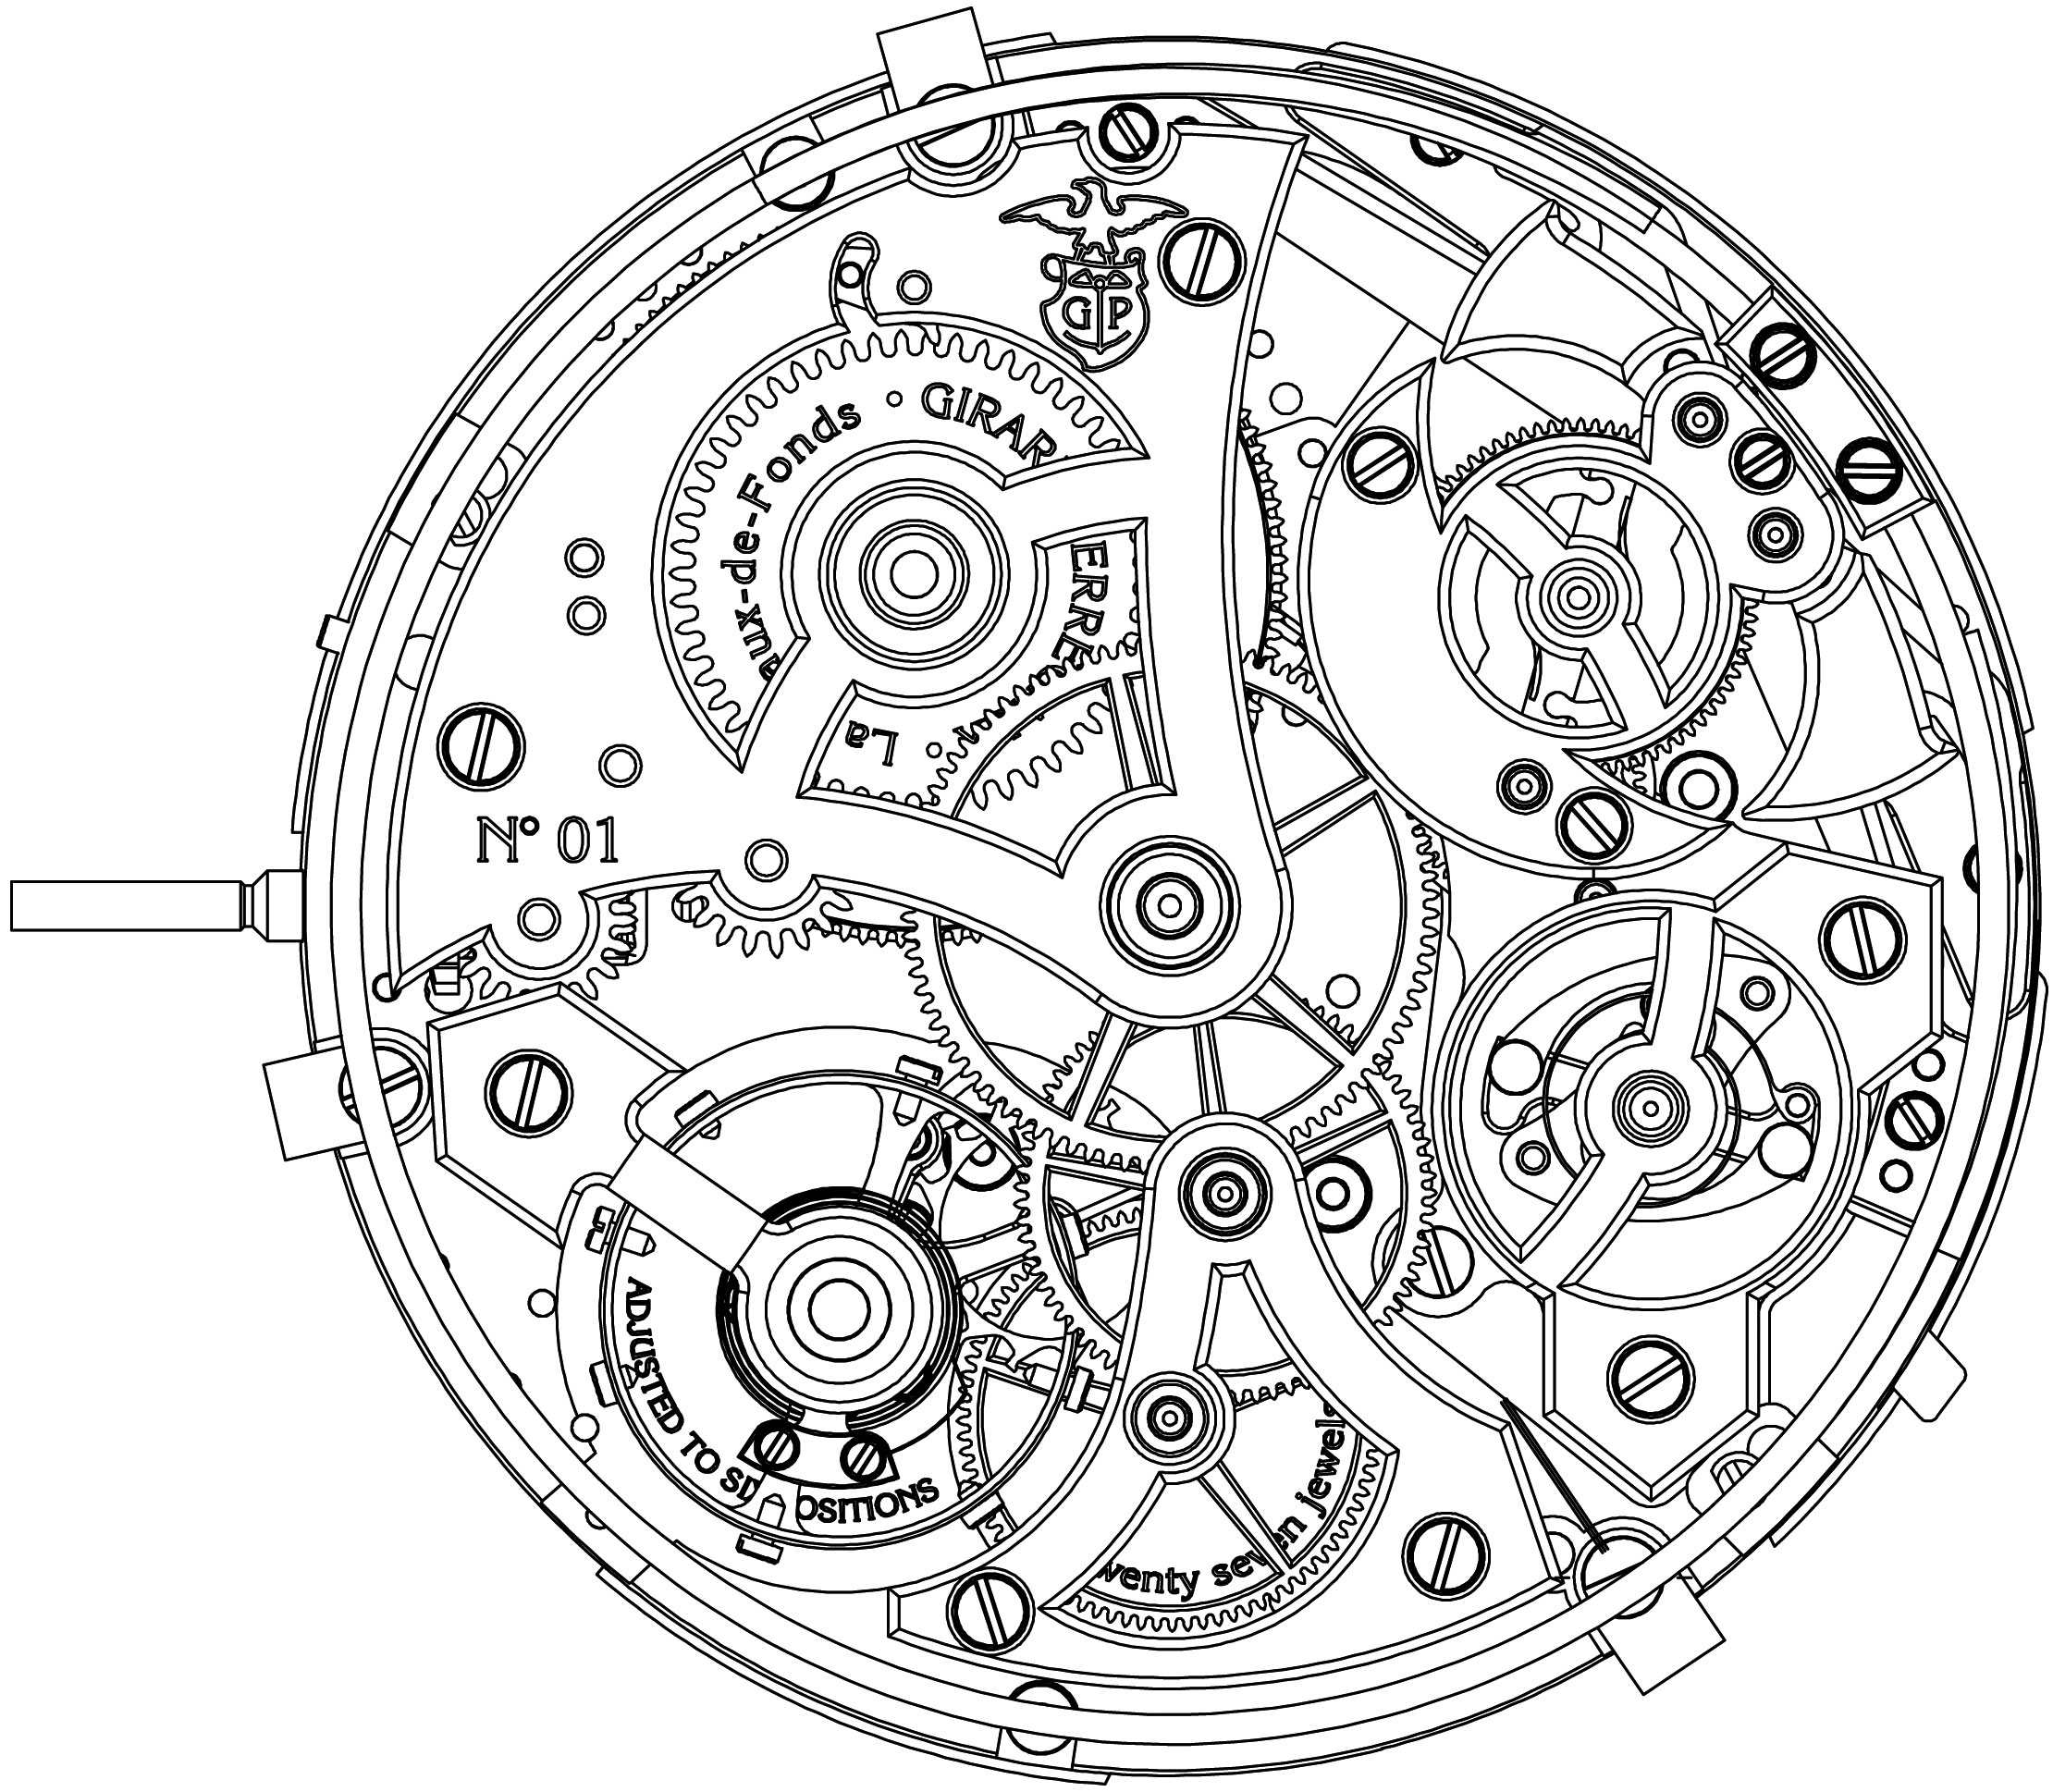 Clock Maintenance Repair additionally Picture of a sewing machine and the parts of the machine together with Hermle Ravensburg Mechanical Skeleton Wall Clock 70974 000711 in addition Exploded View Carburetor Chevrolet 5 7 likewise B0bc45f00f5a4efe82680d68fe7b485c. on antique gear box